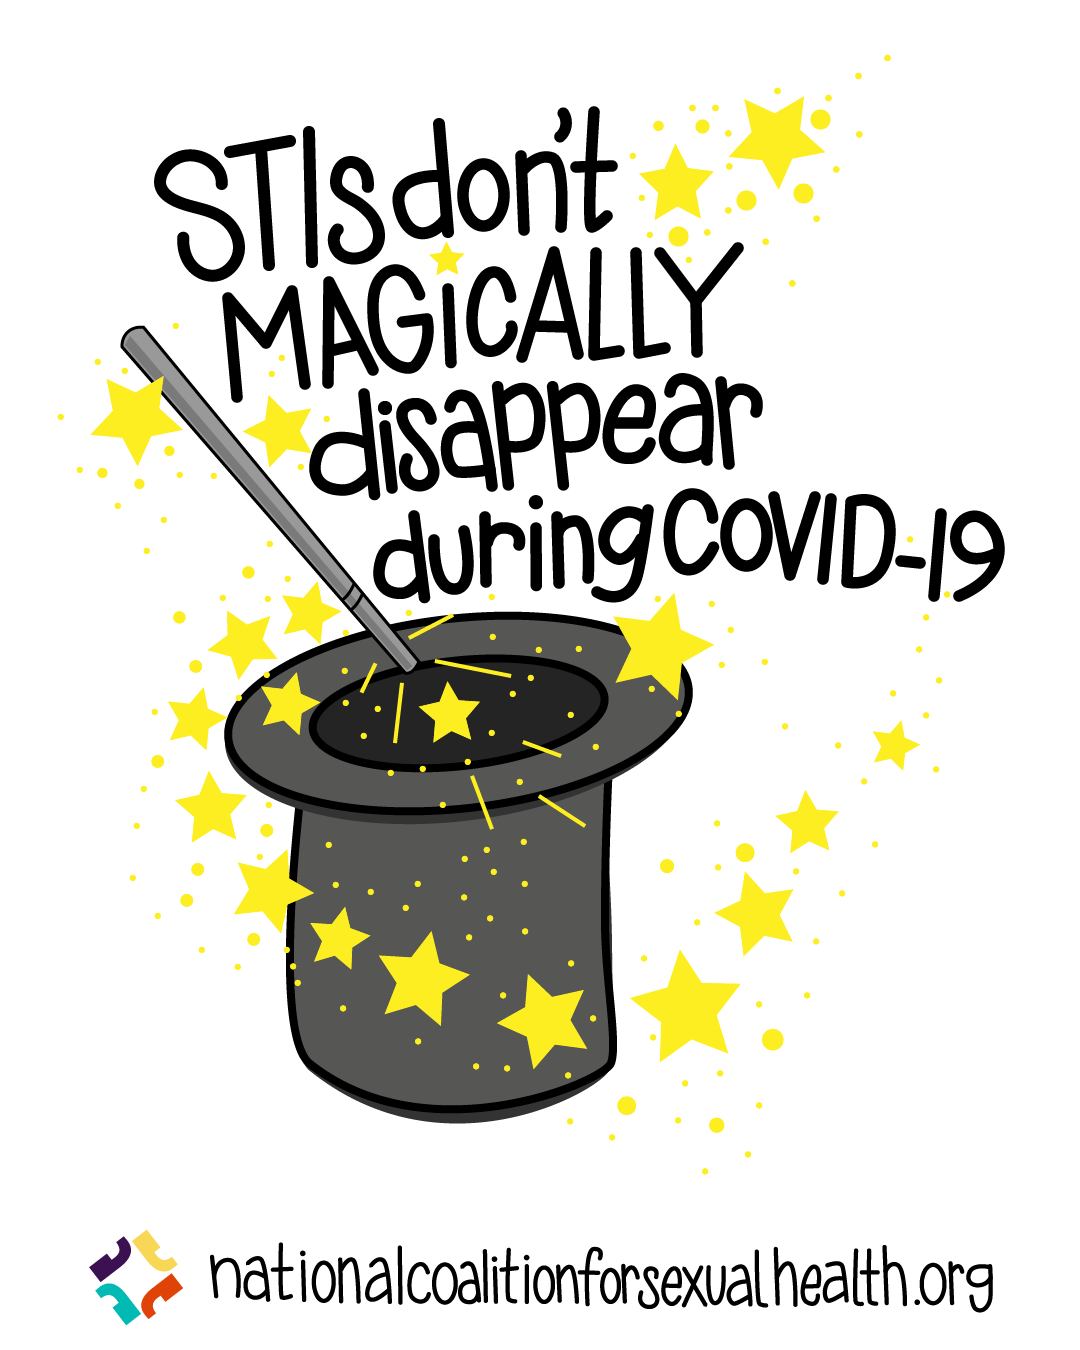 STIs don't magically disappear during COVID-19